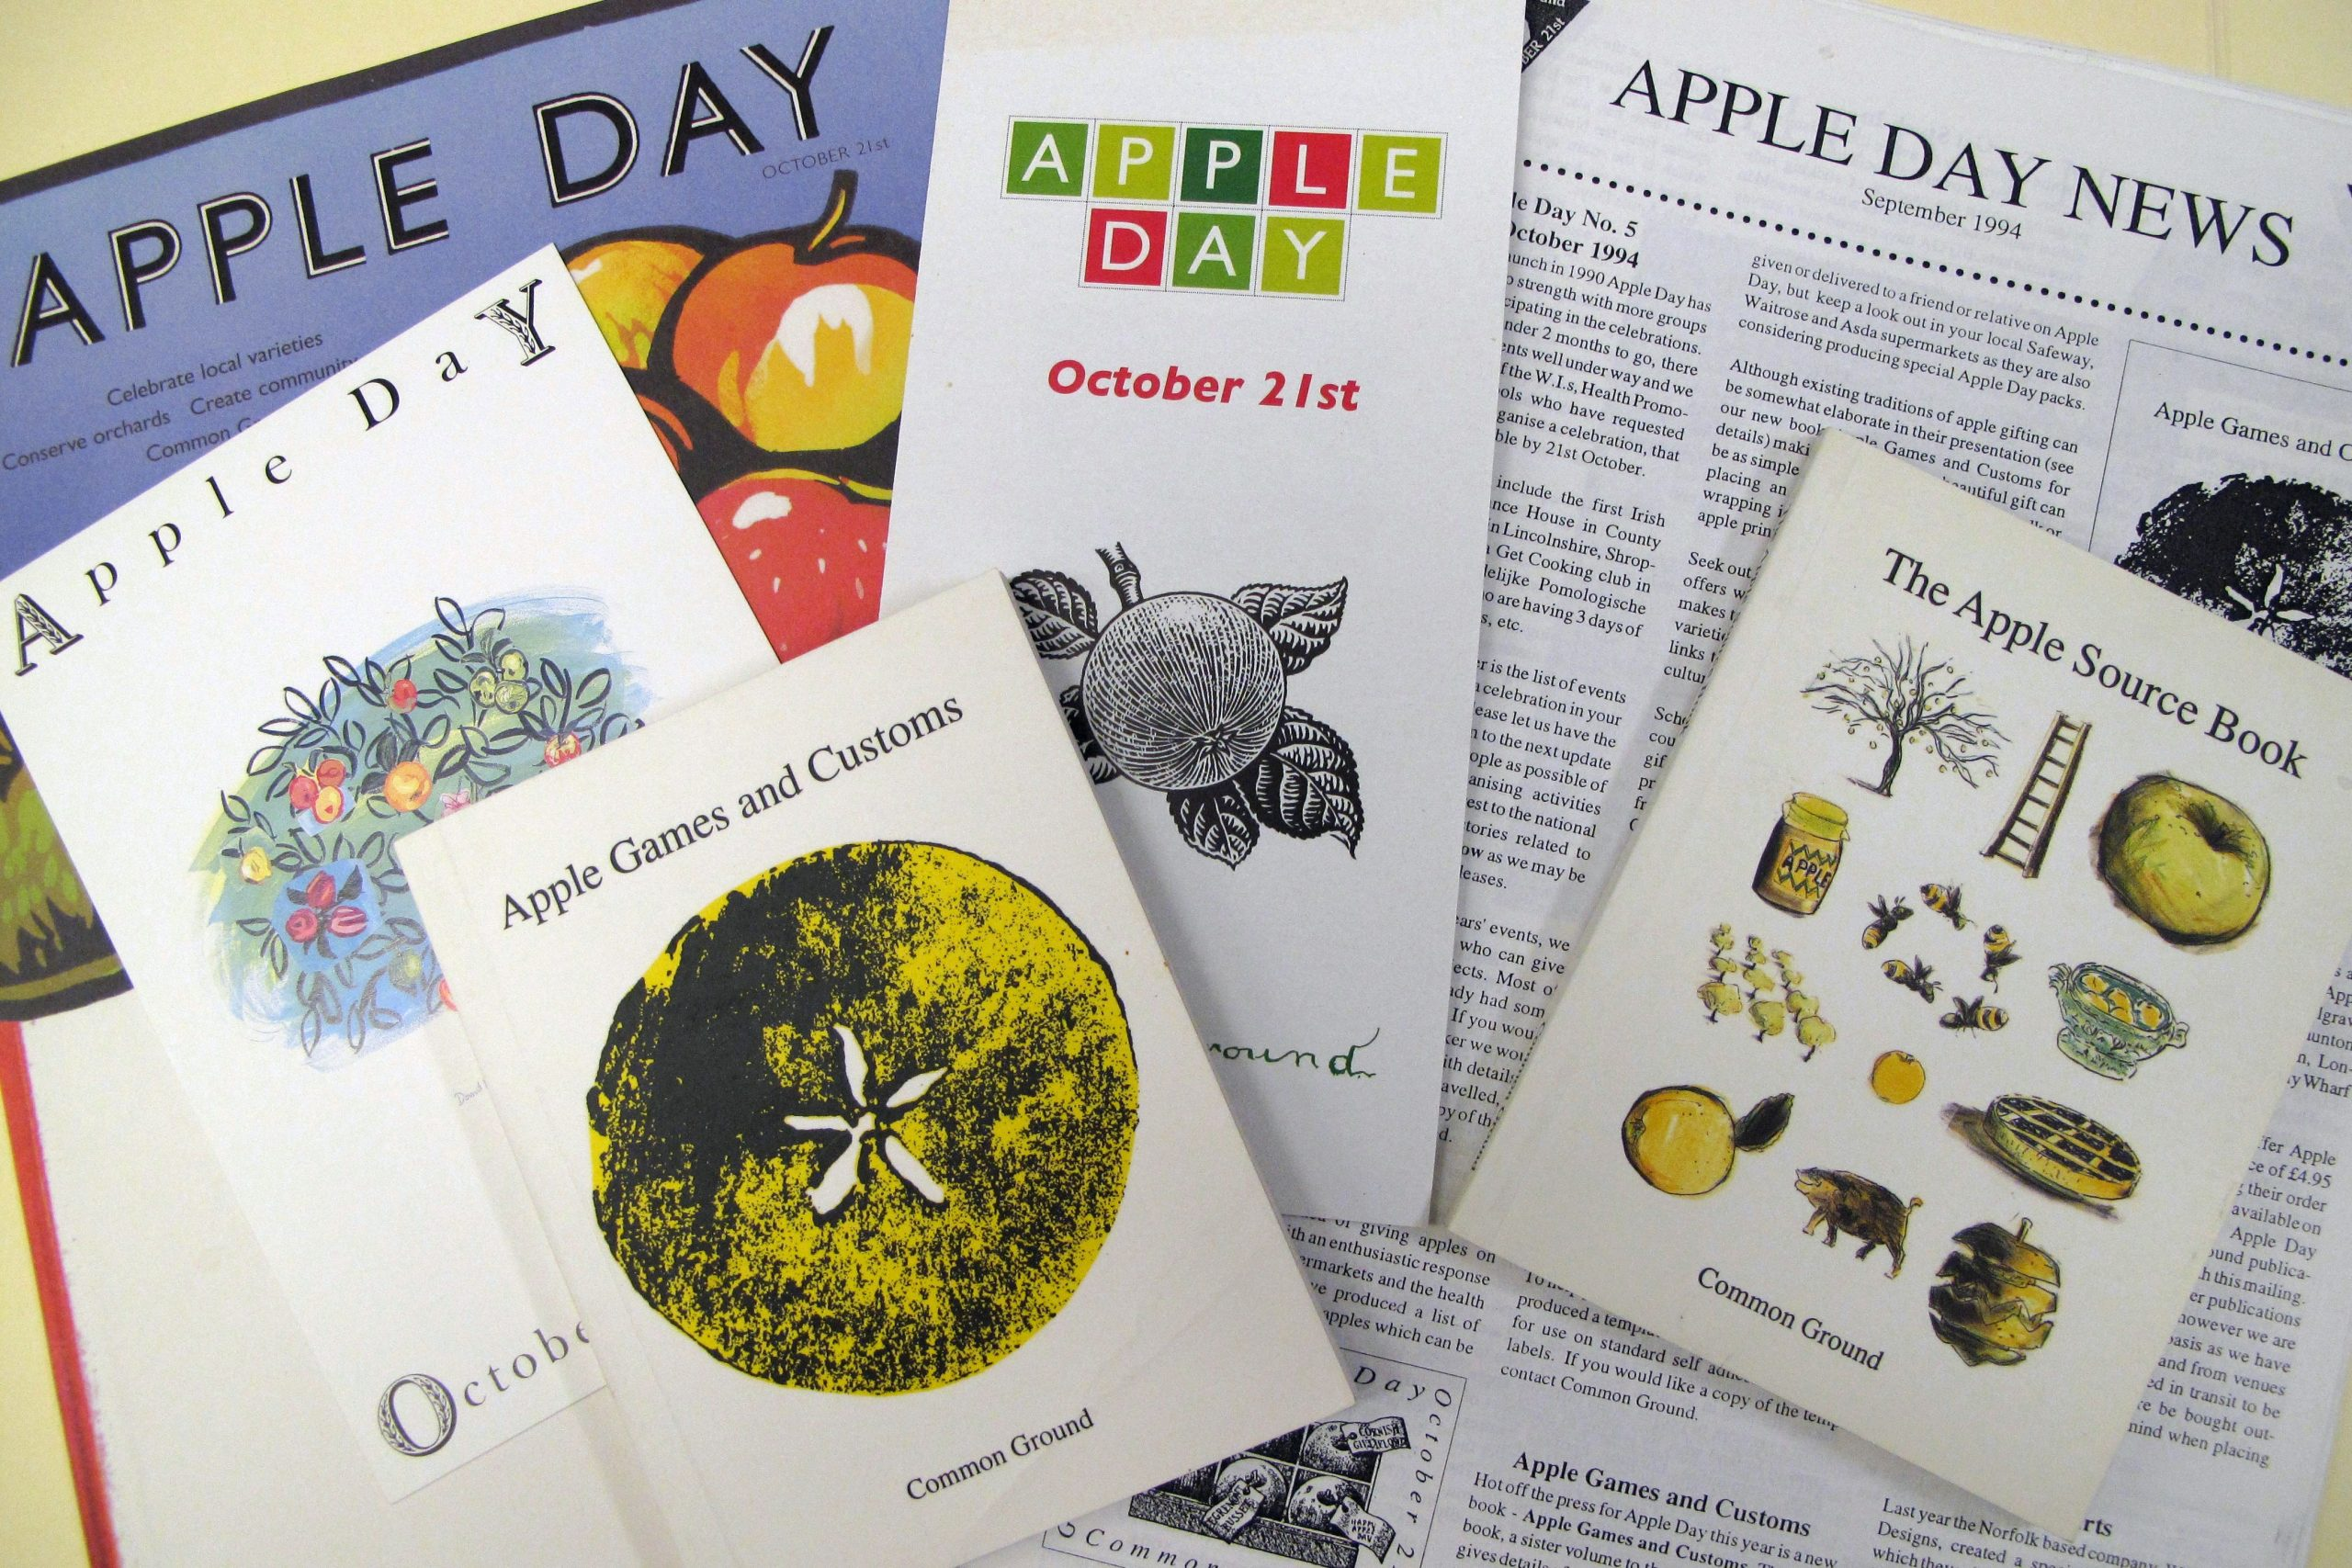 EUL MS 416/PRO/8 - Archive material relating to the 'Apple Day' project